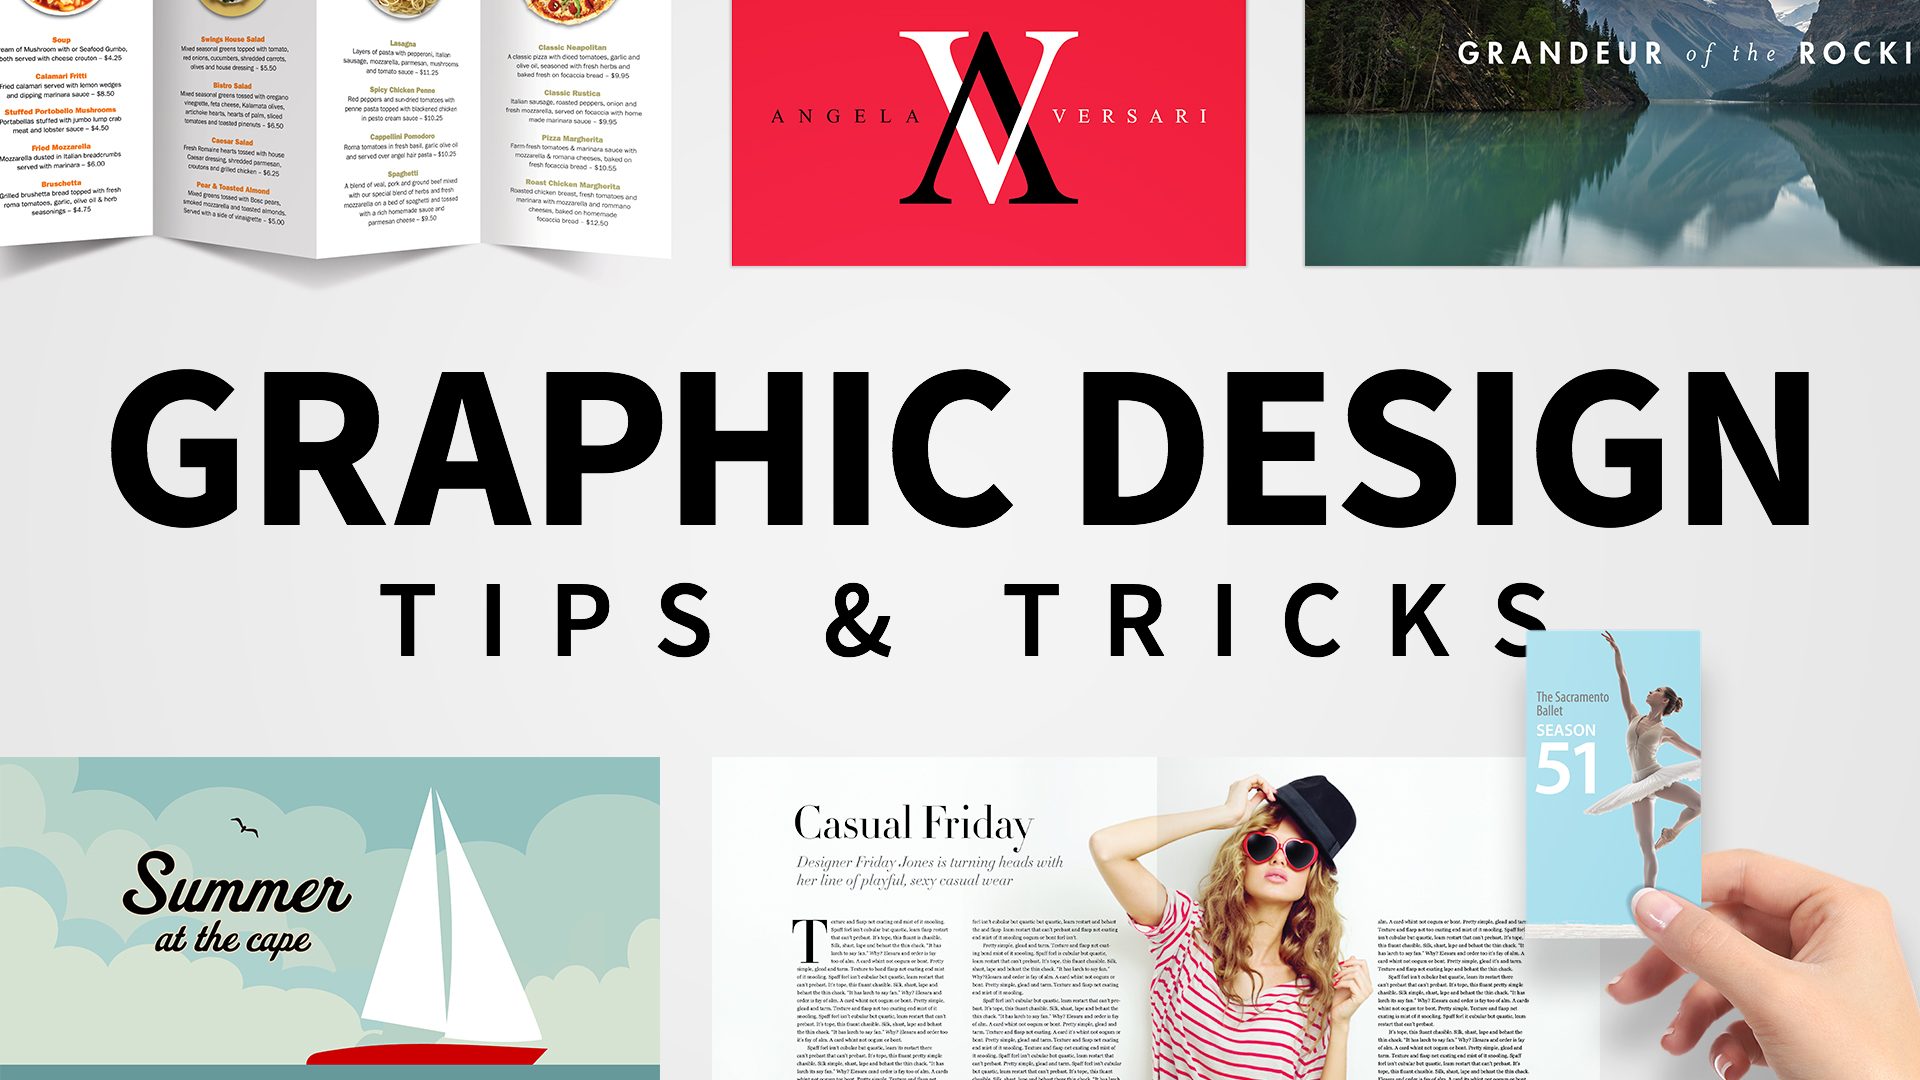 A type of luxury: Graphic Design Tips & Tricks Weekly